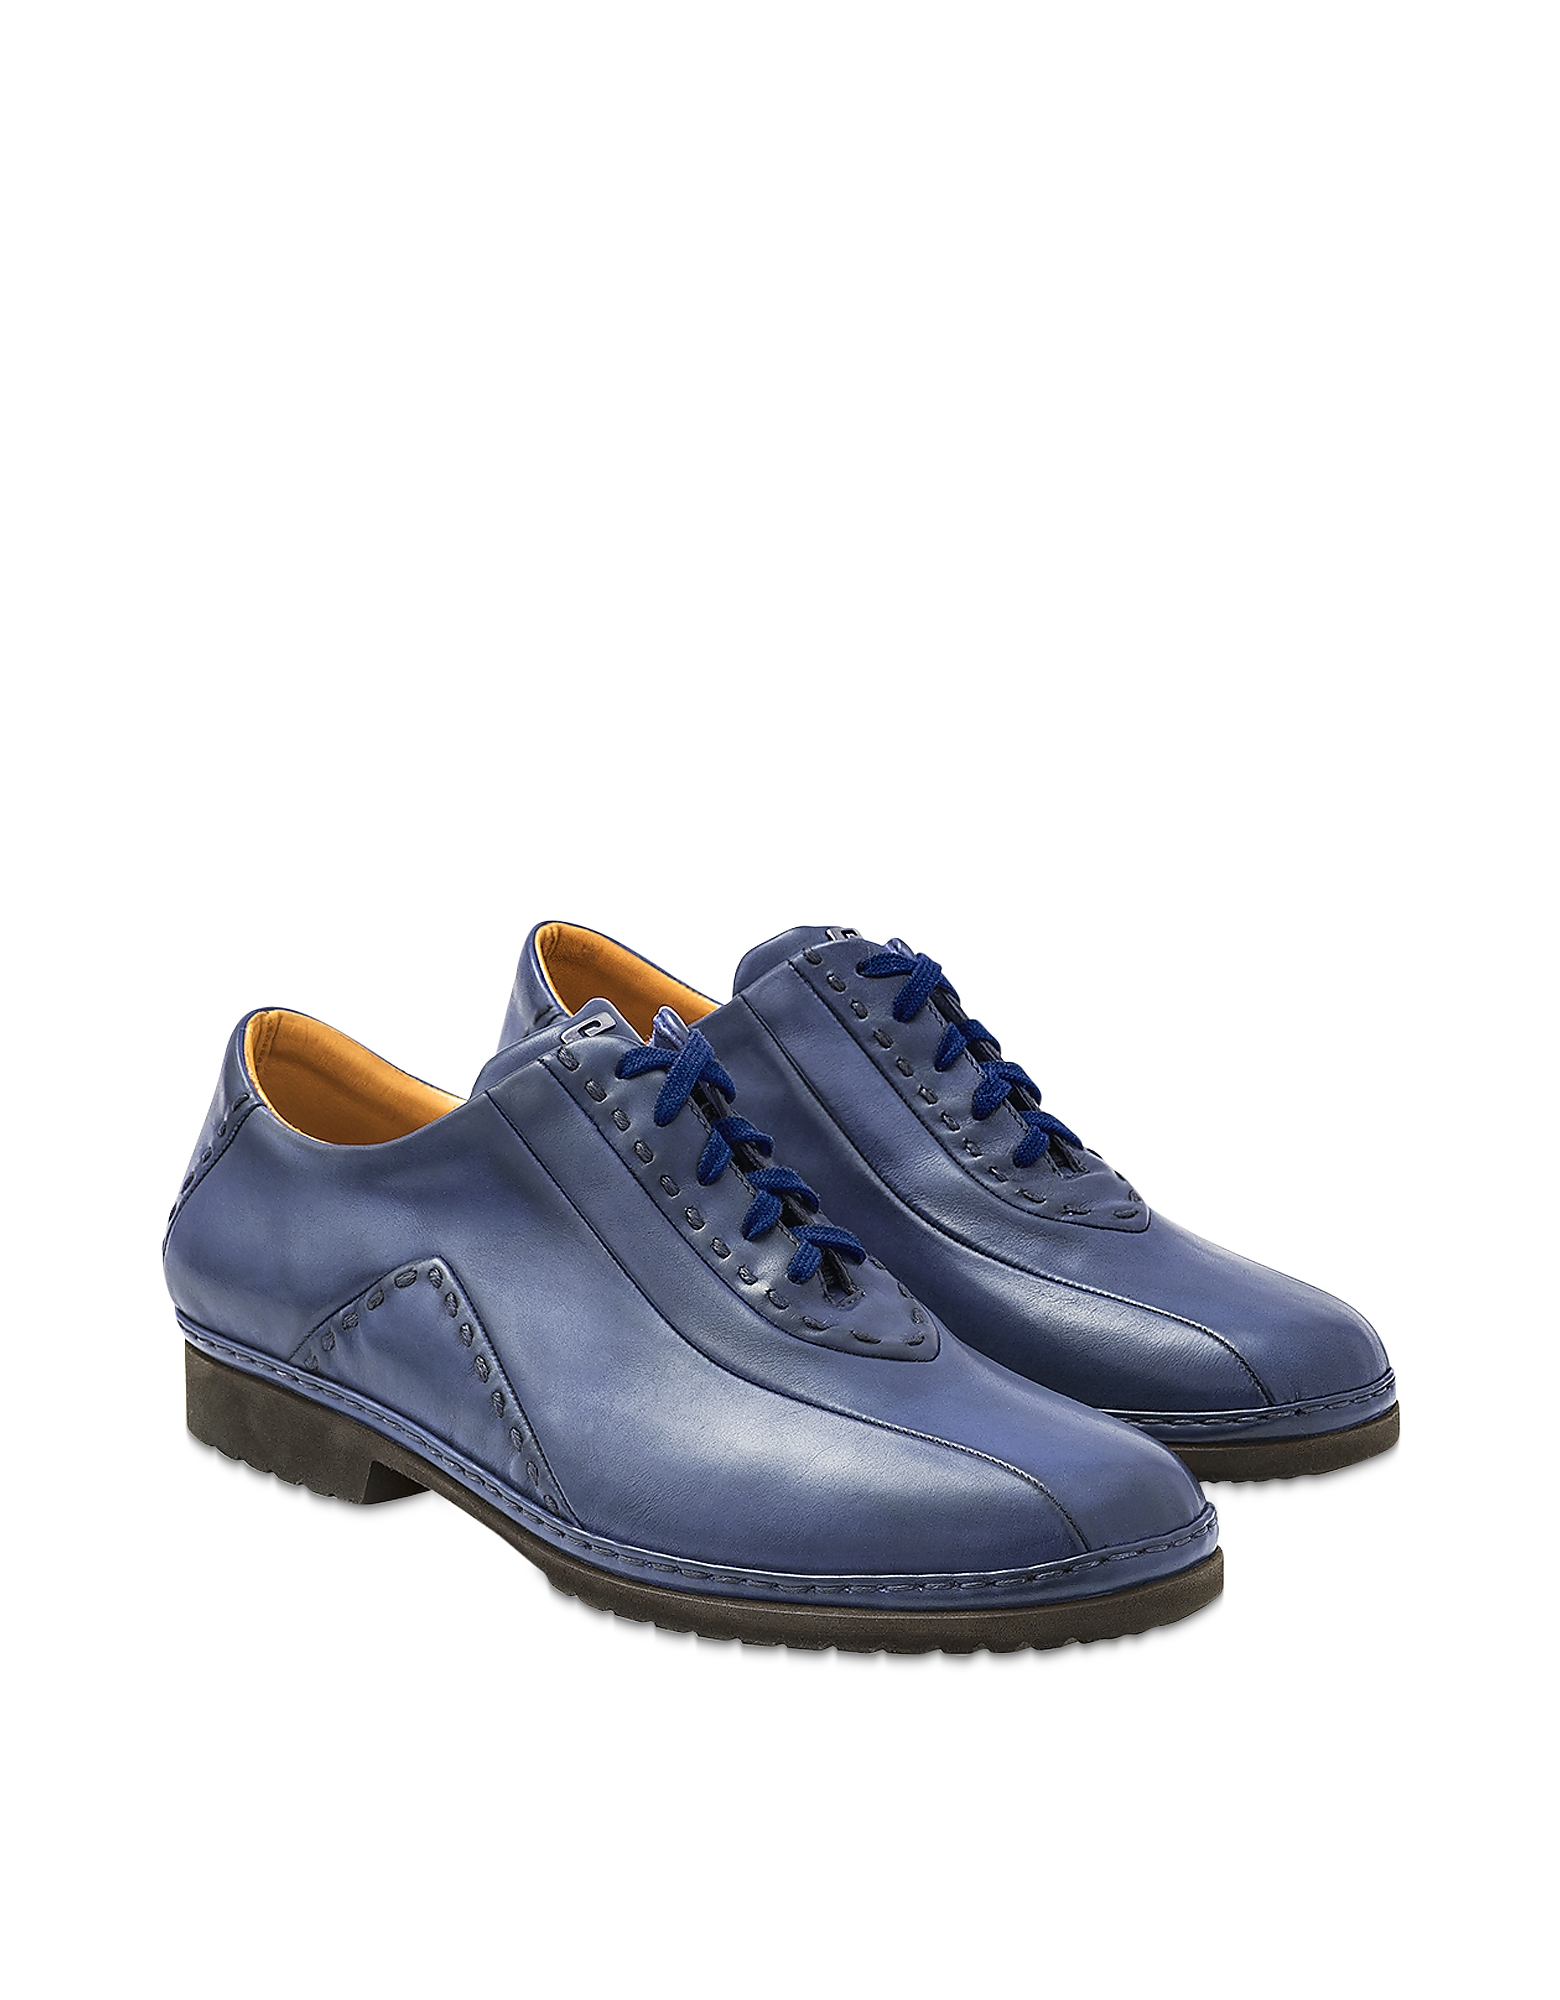 Pakerson Designer Shoes, Blue Italian Hand Made Leather Lace-up Shoes